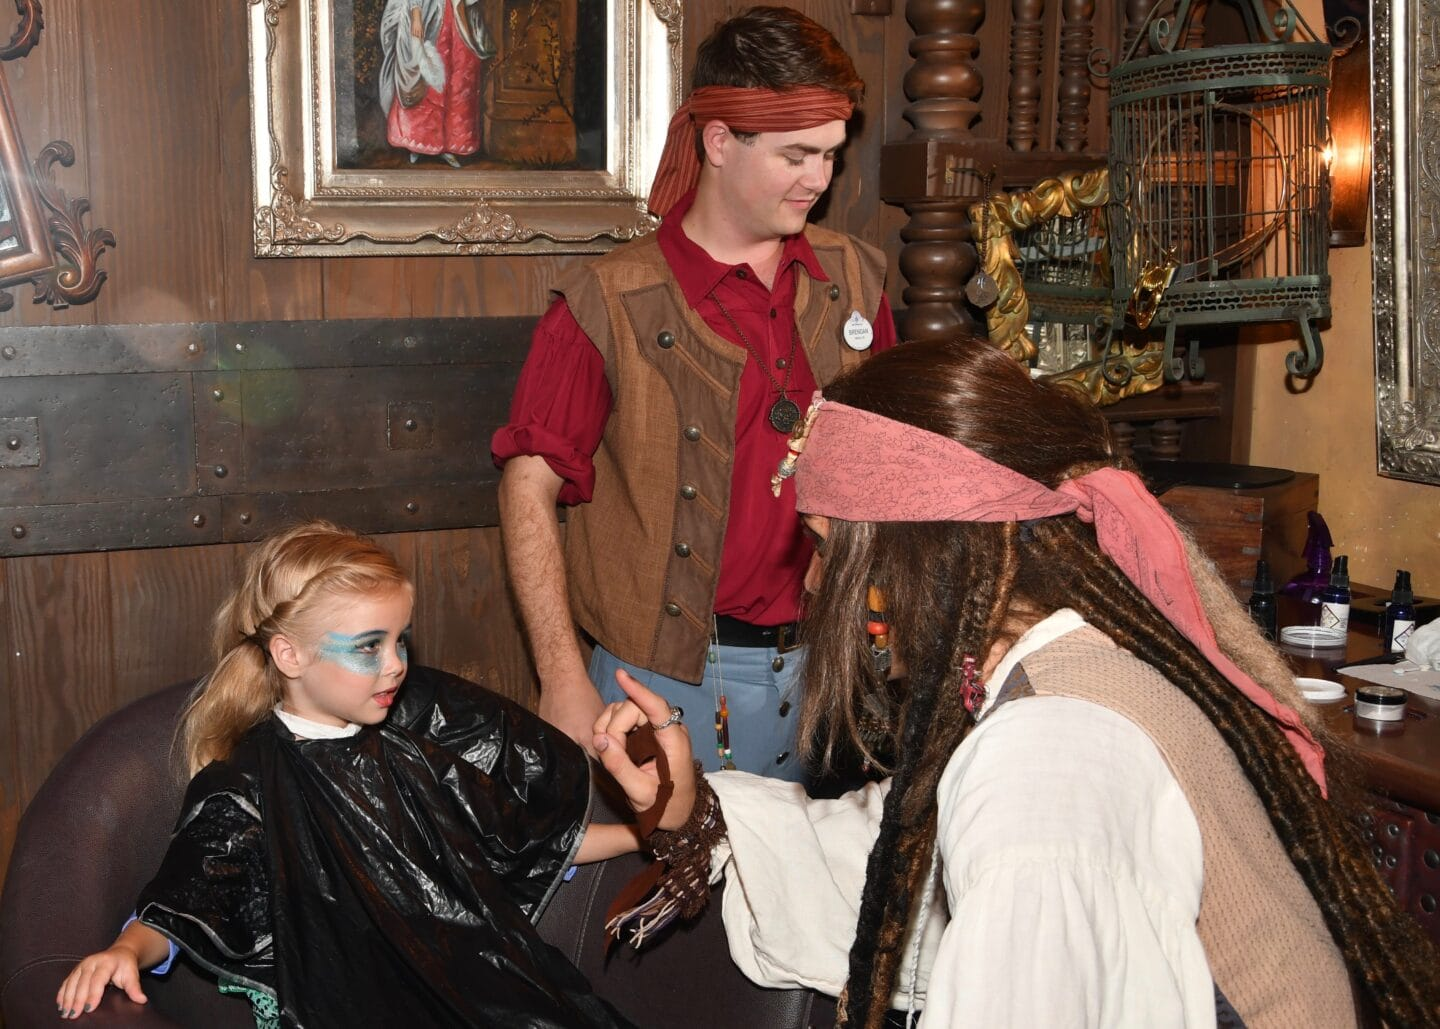 mermaid makeover at Disney World at the pirate's league